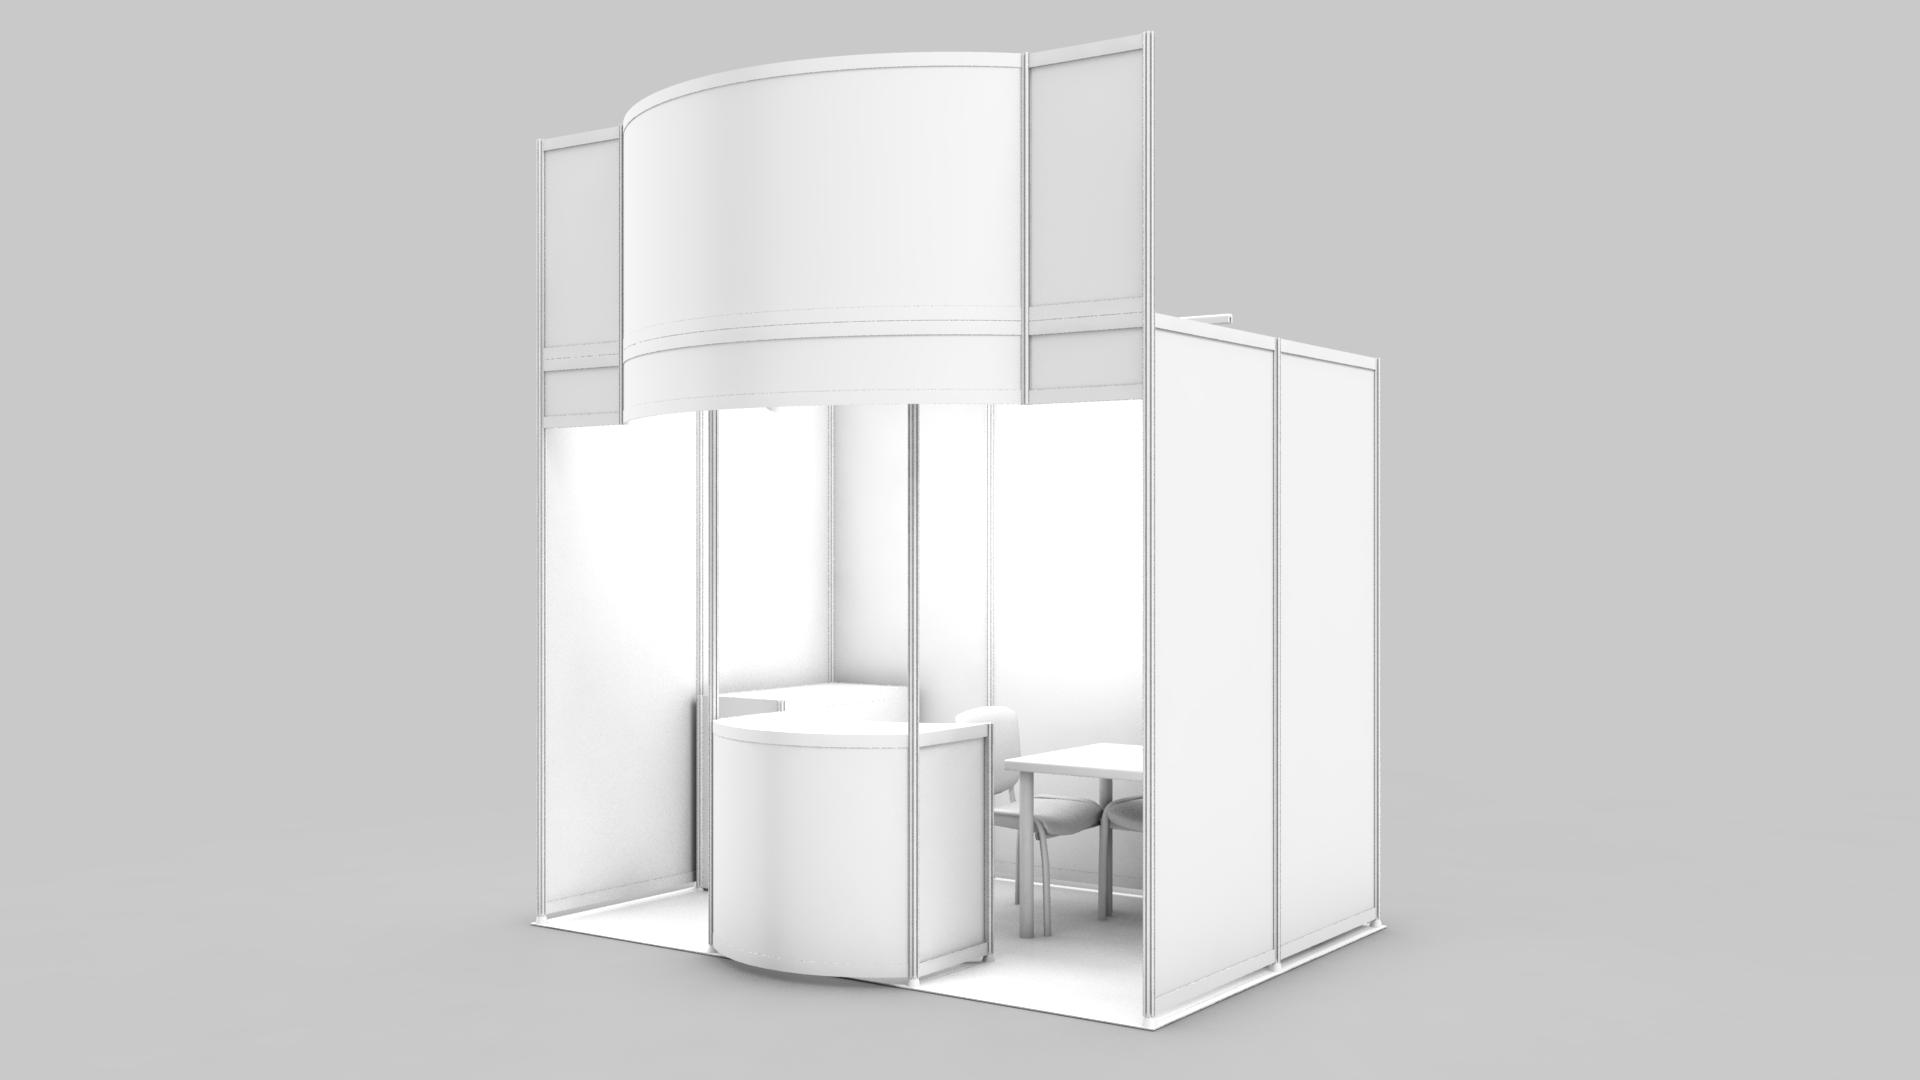 Exhibition Stall D Model Free Download : ▷ exhibition stand d model free download・cgstudio